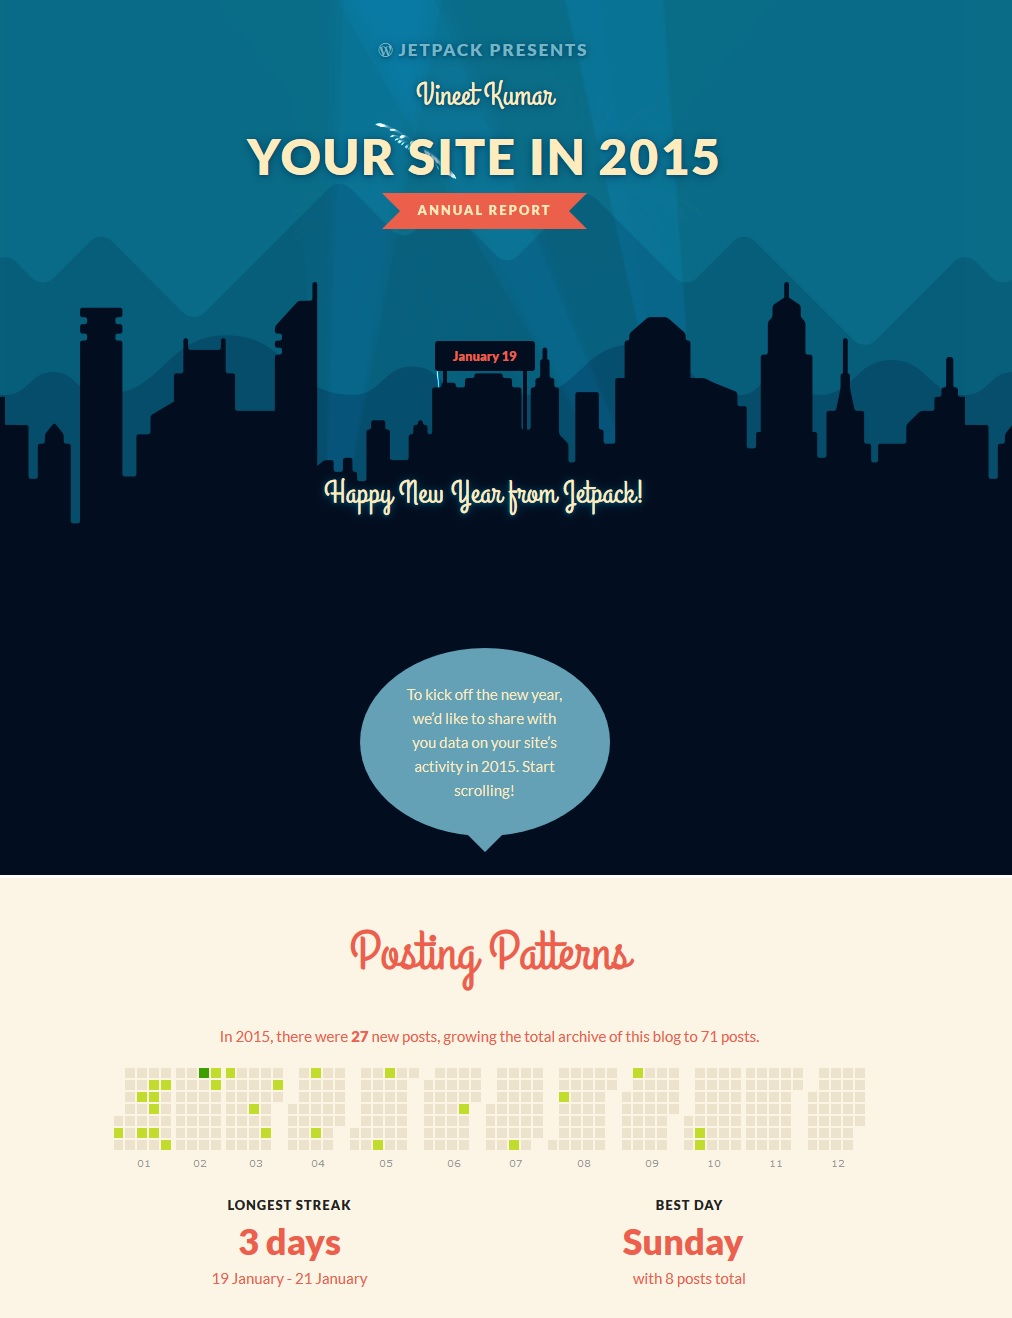 Year 2015 in Blogging: A Report